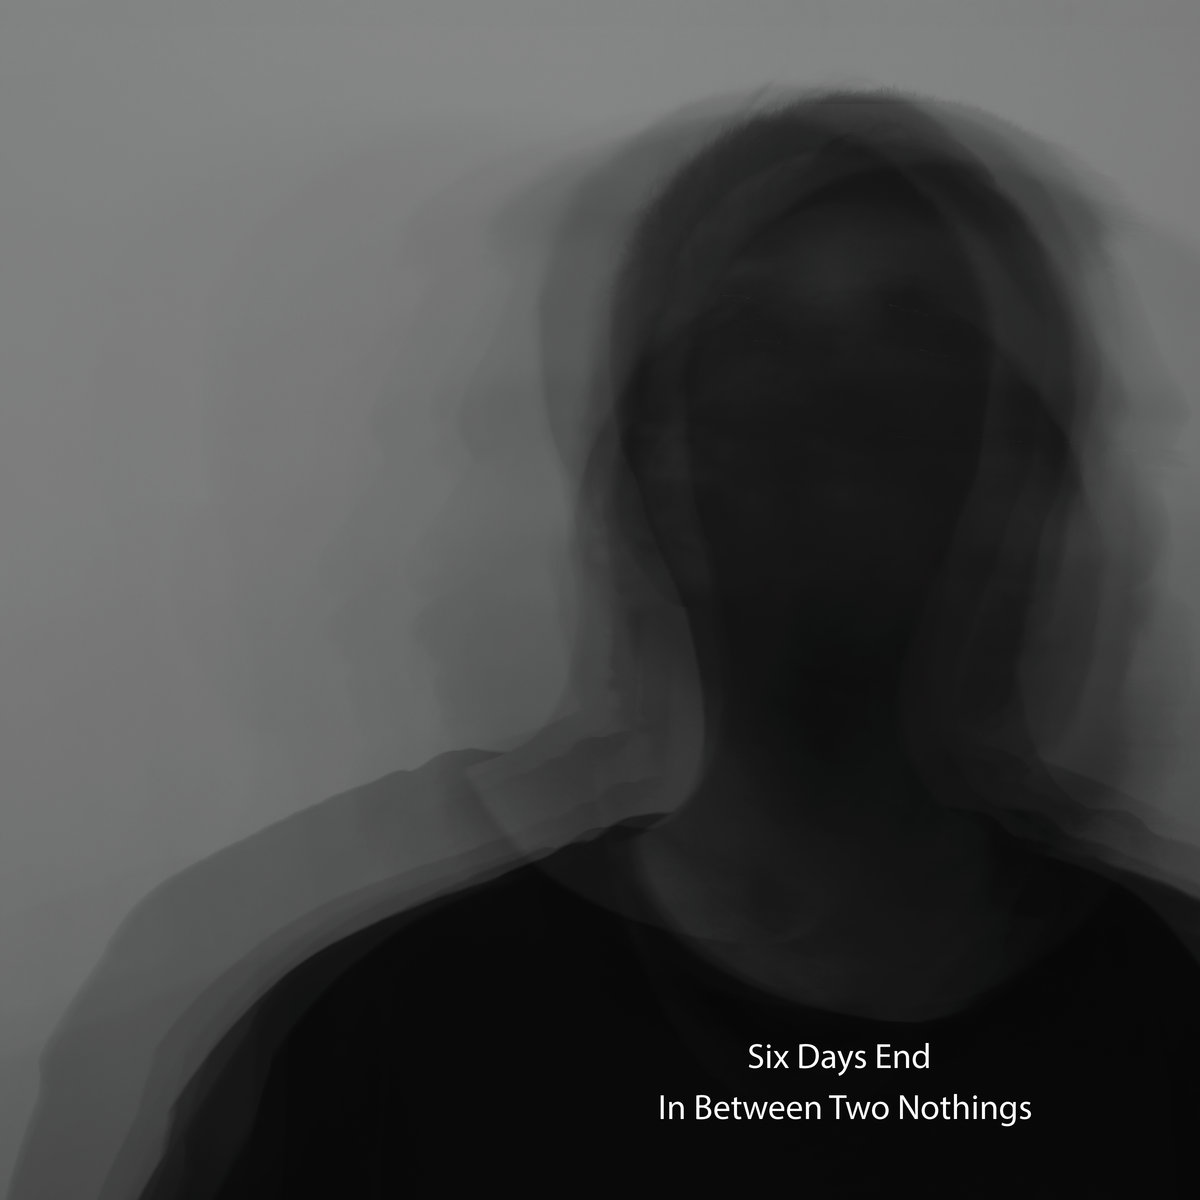 SIX DAYS END - IN BETWEEN TWO NOTHINGS